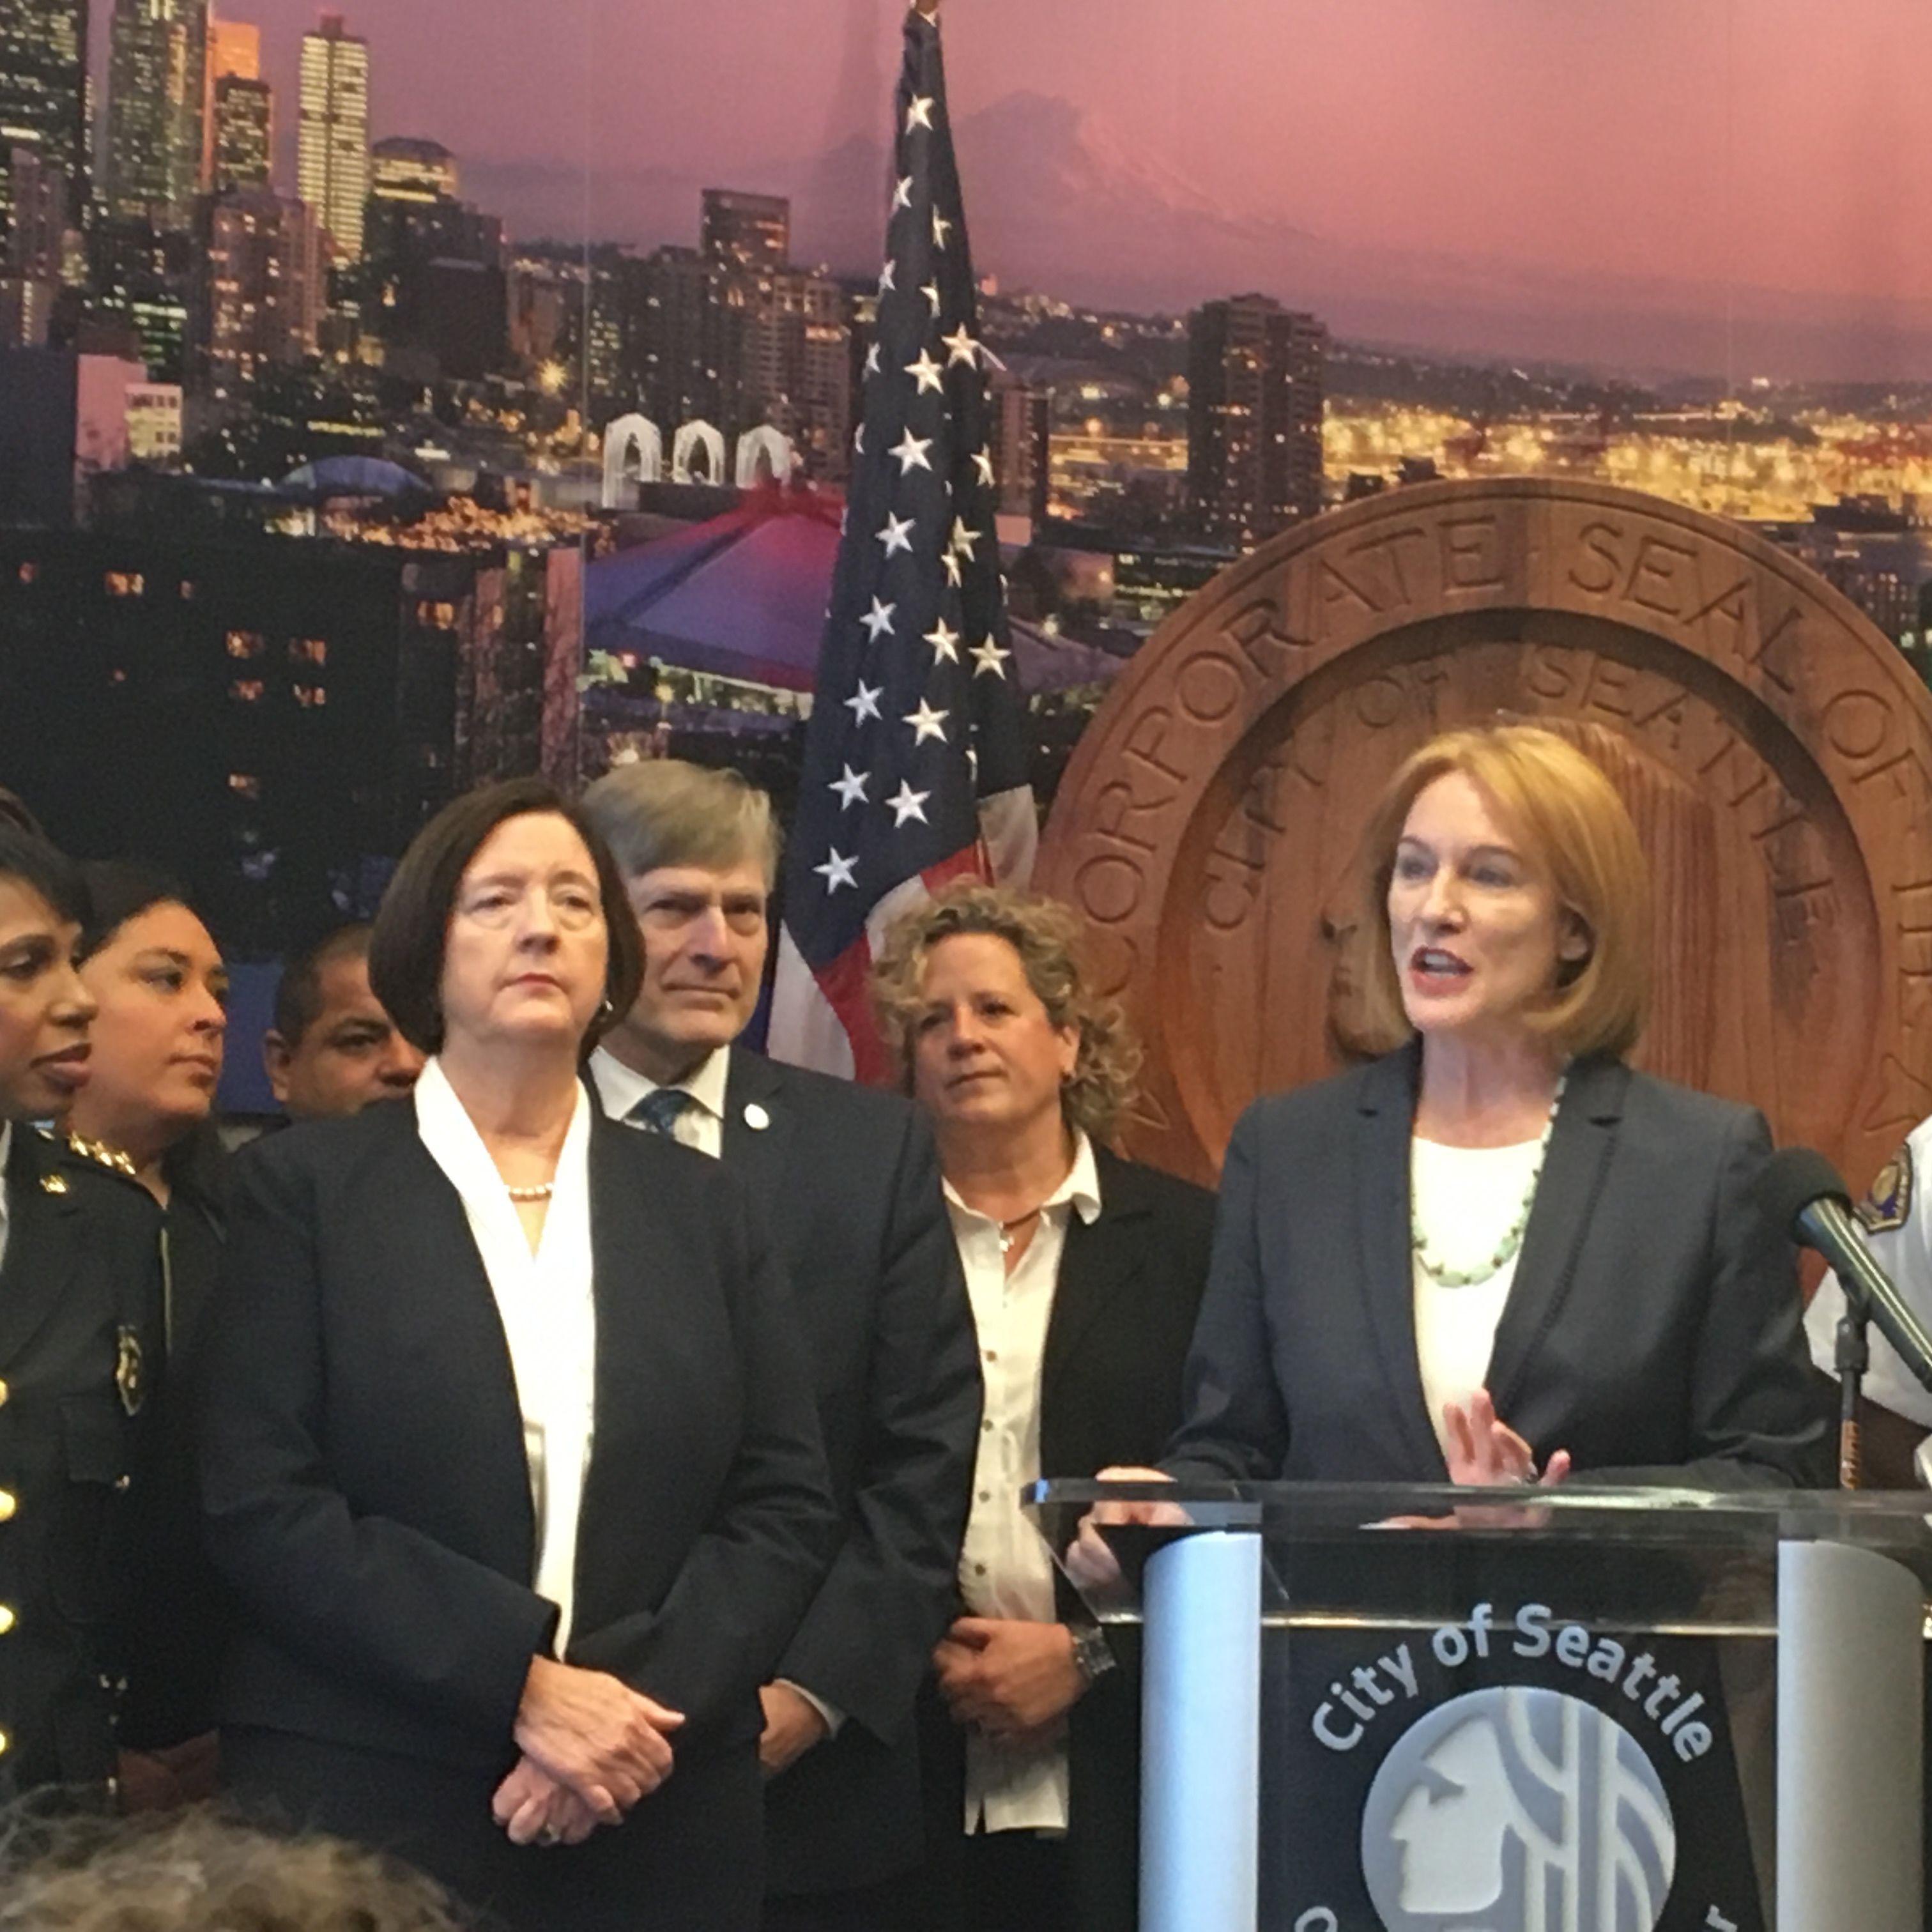 Jenny durkan kathleen o toole step down city seattle lzi6mf